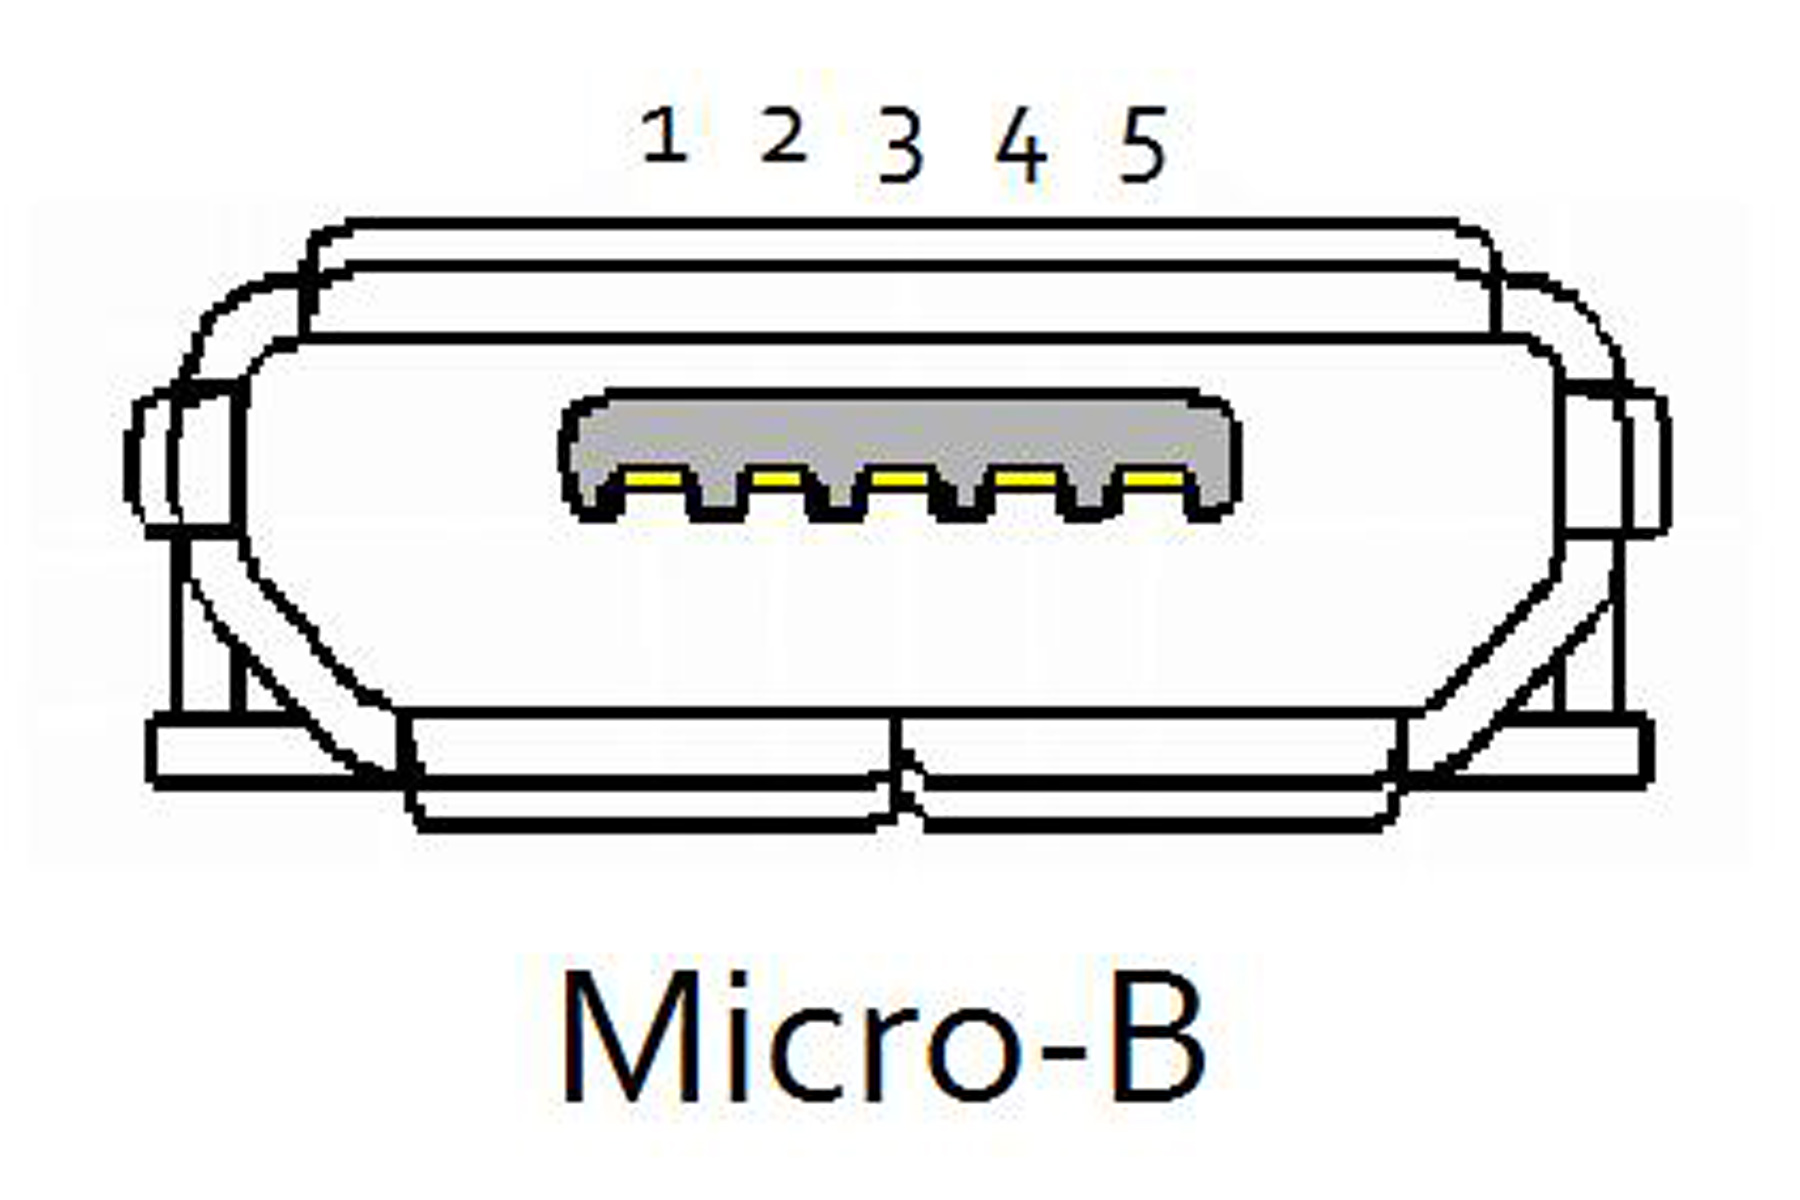 Usb Mini Pinout Additionally Micro Diagram On B Receptacle